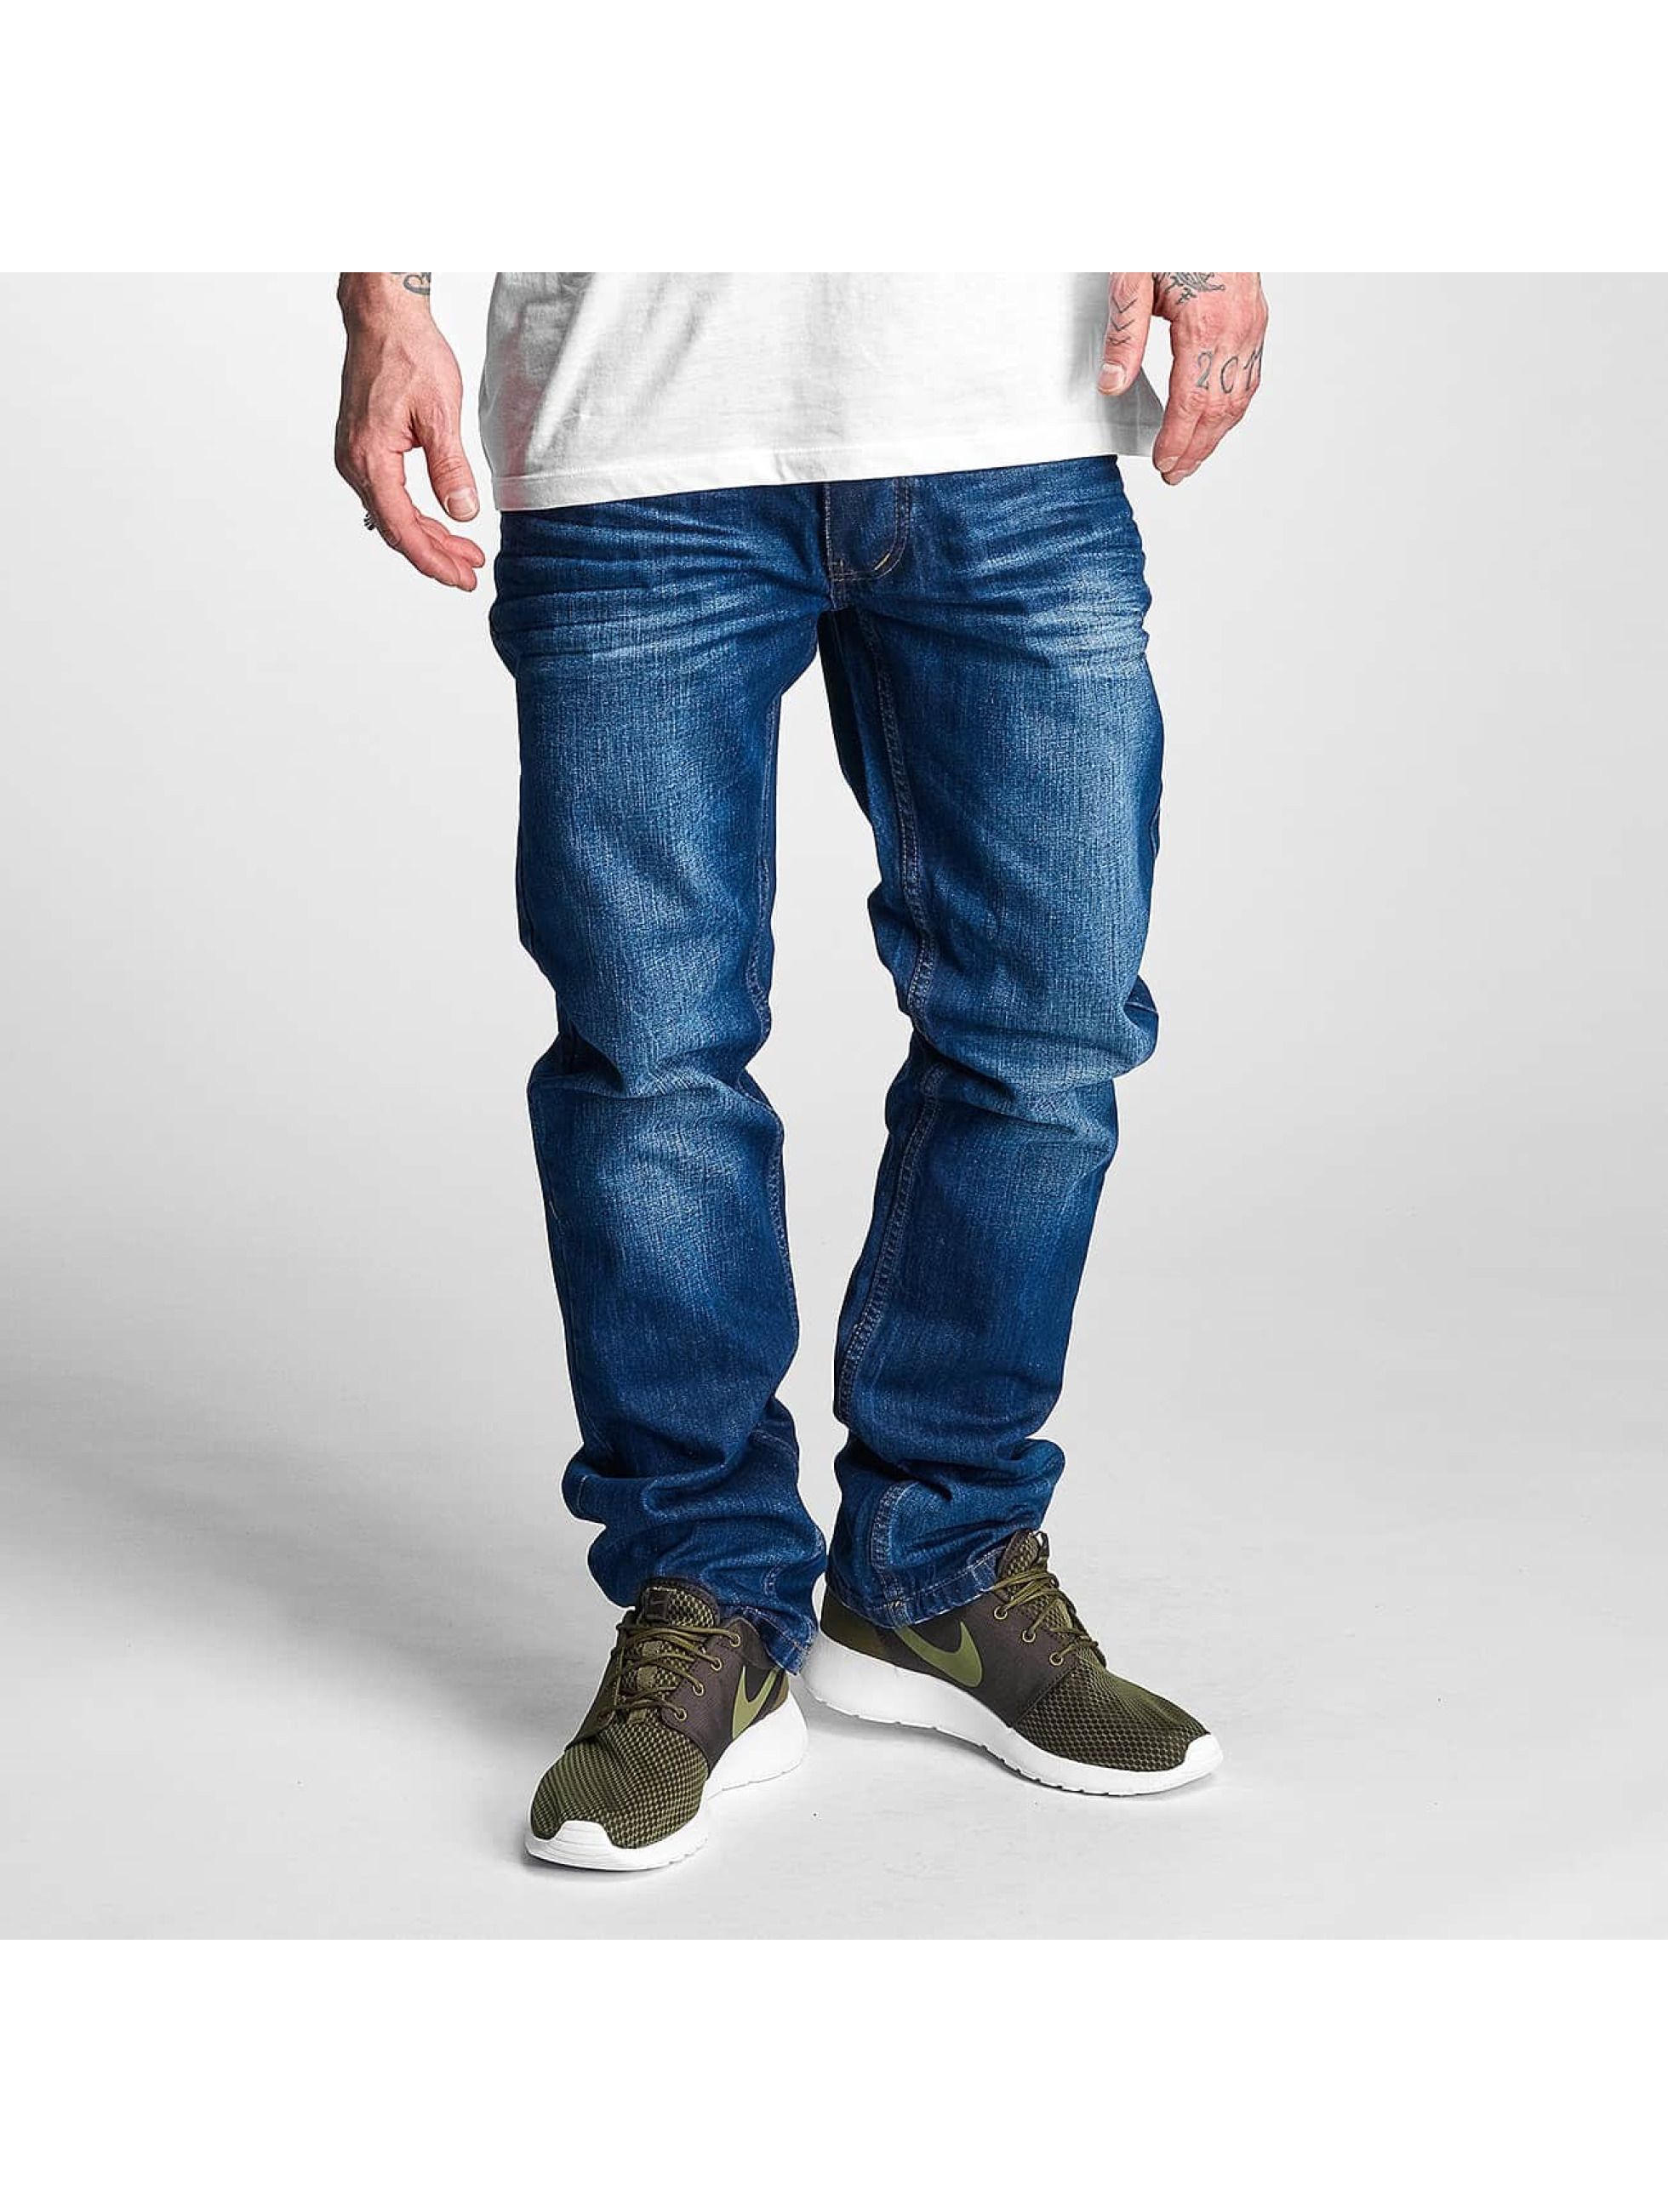 Rocawear / Straight Fit Jeans Relaxed in blue W 36